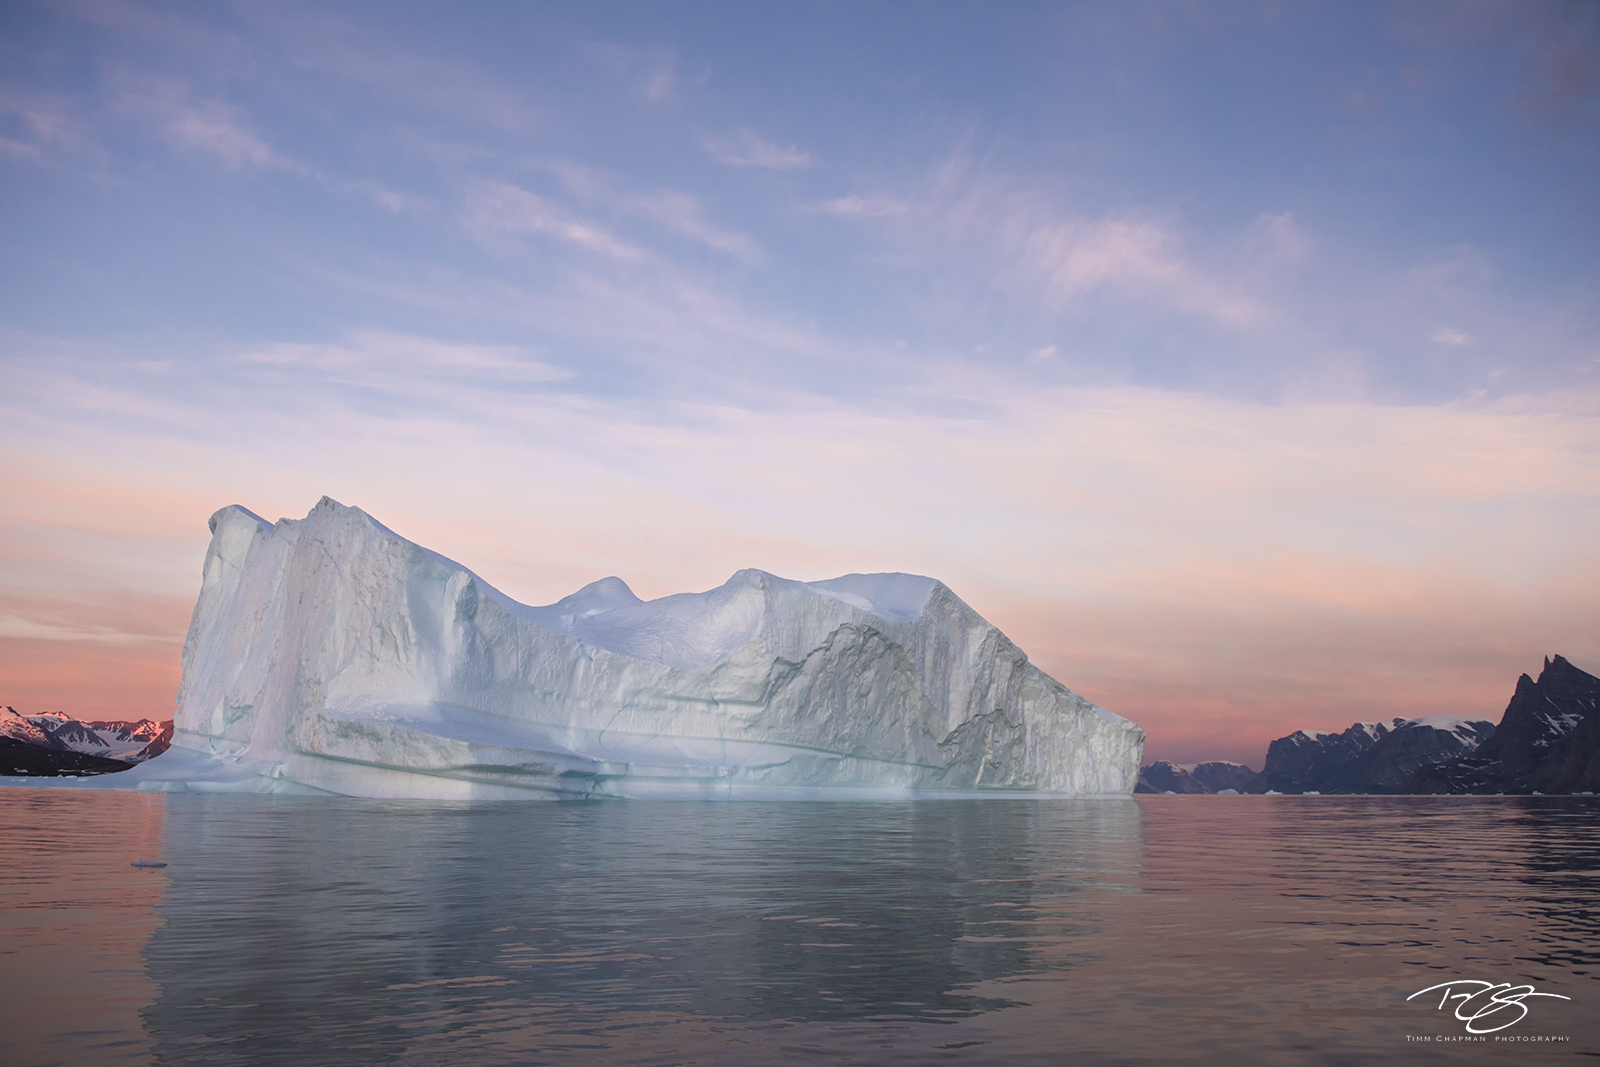 ice; iceberg; reflection; predawn; eventide; twilight; pastel sky; pink sky; alpenglow, dawn, photo